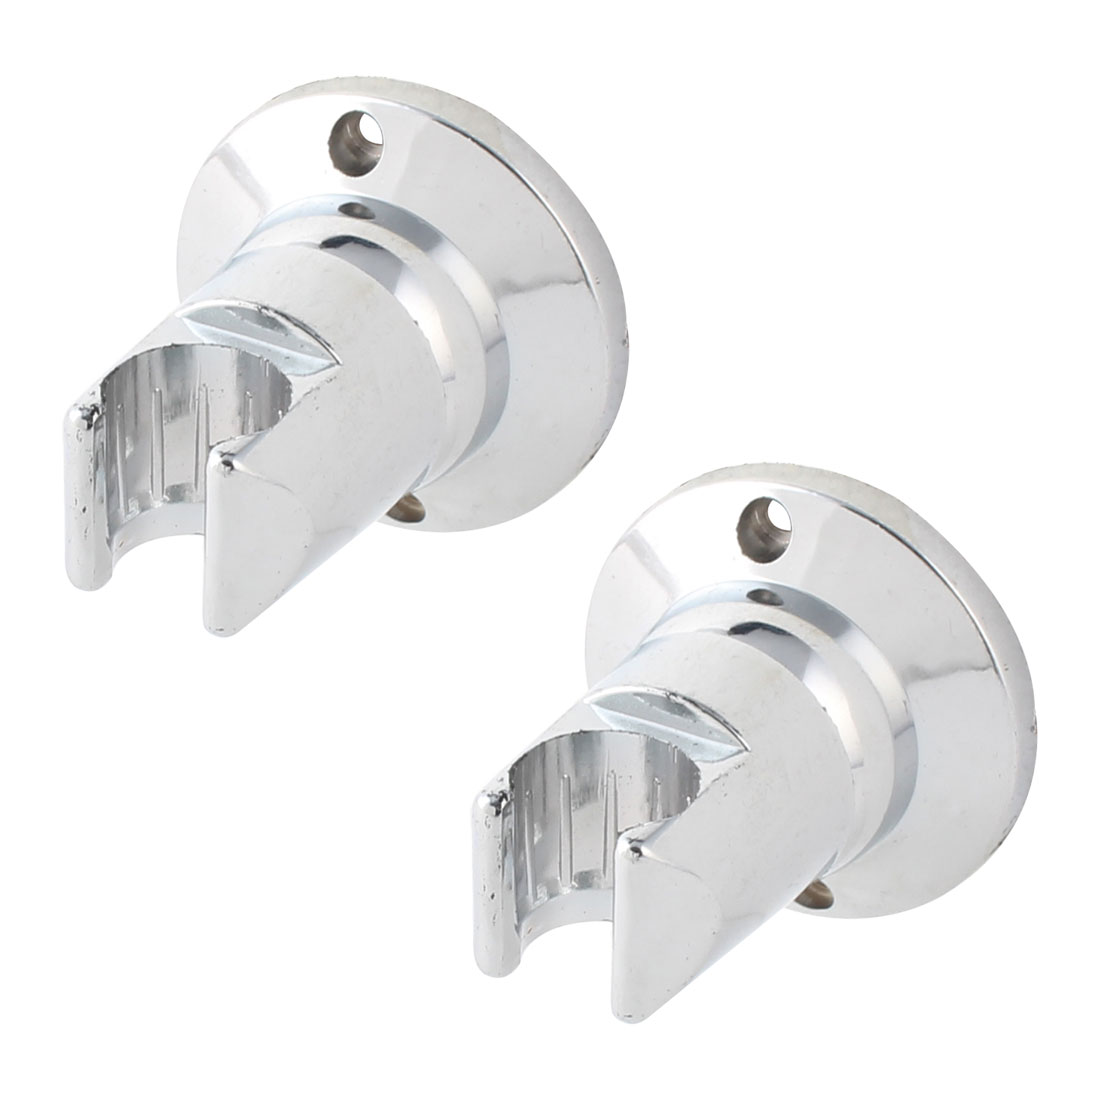 Household Bathroom Plastic Wall Mount Shower Head Holder Bracket Hanger Silver Tone 2 Pcs